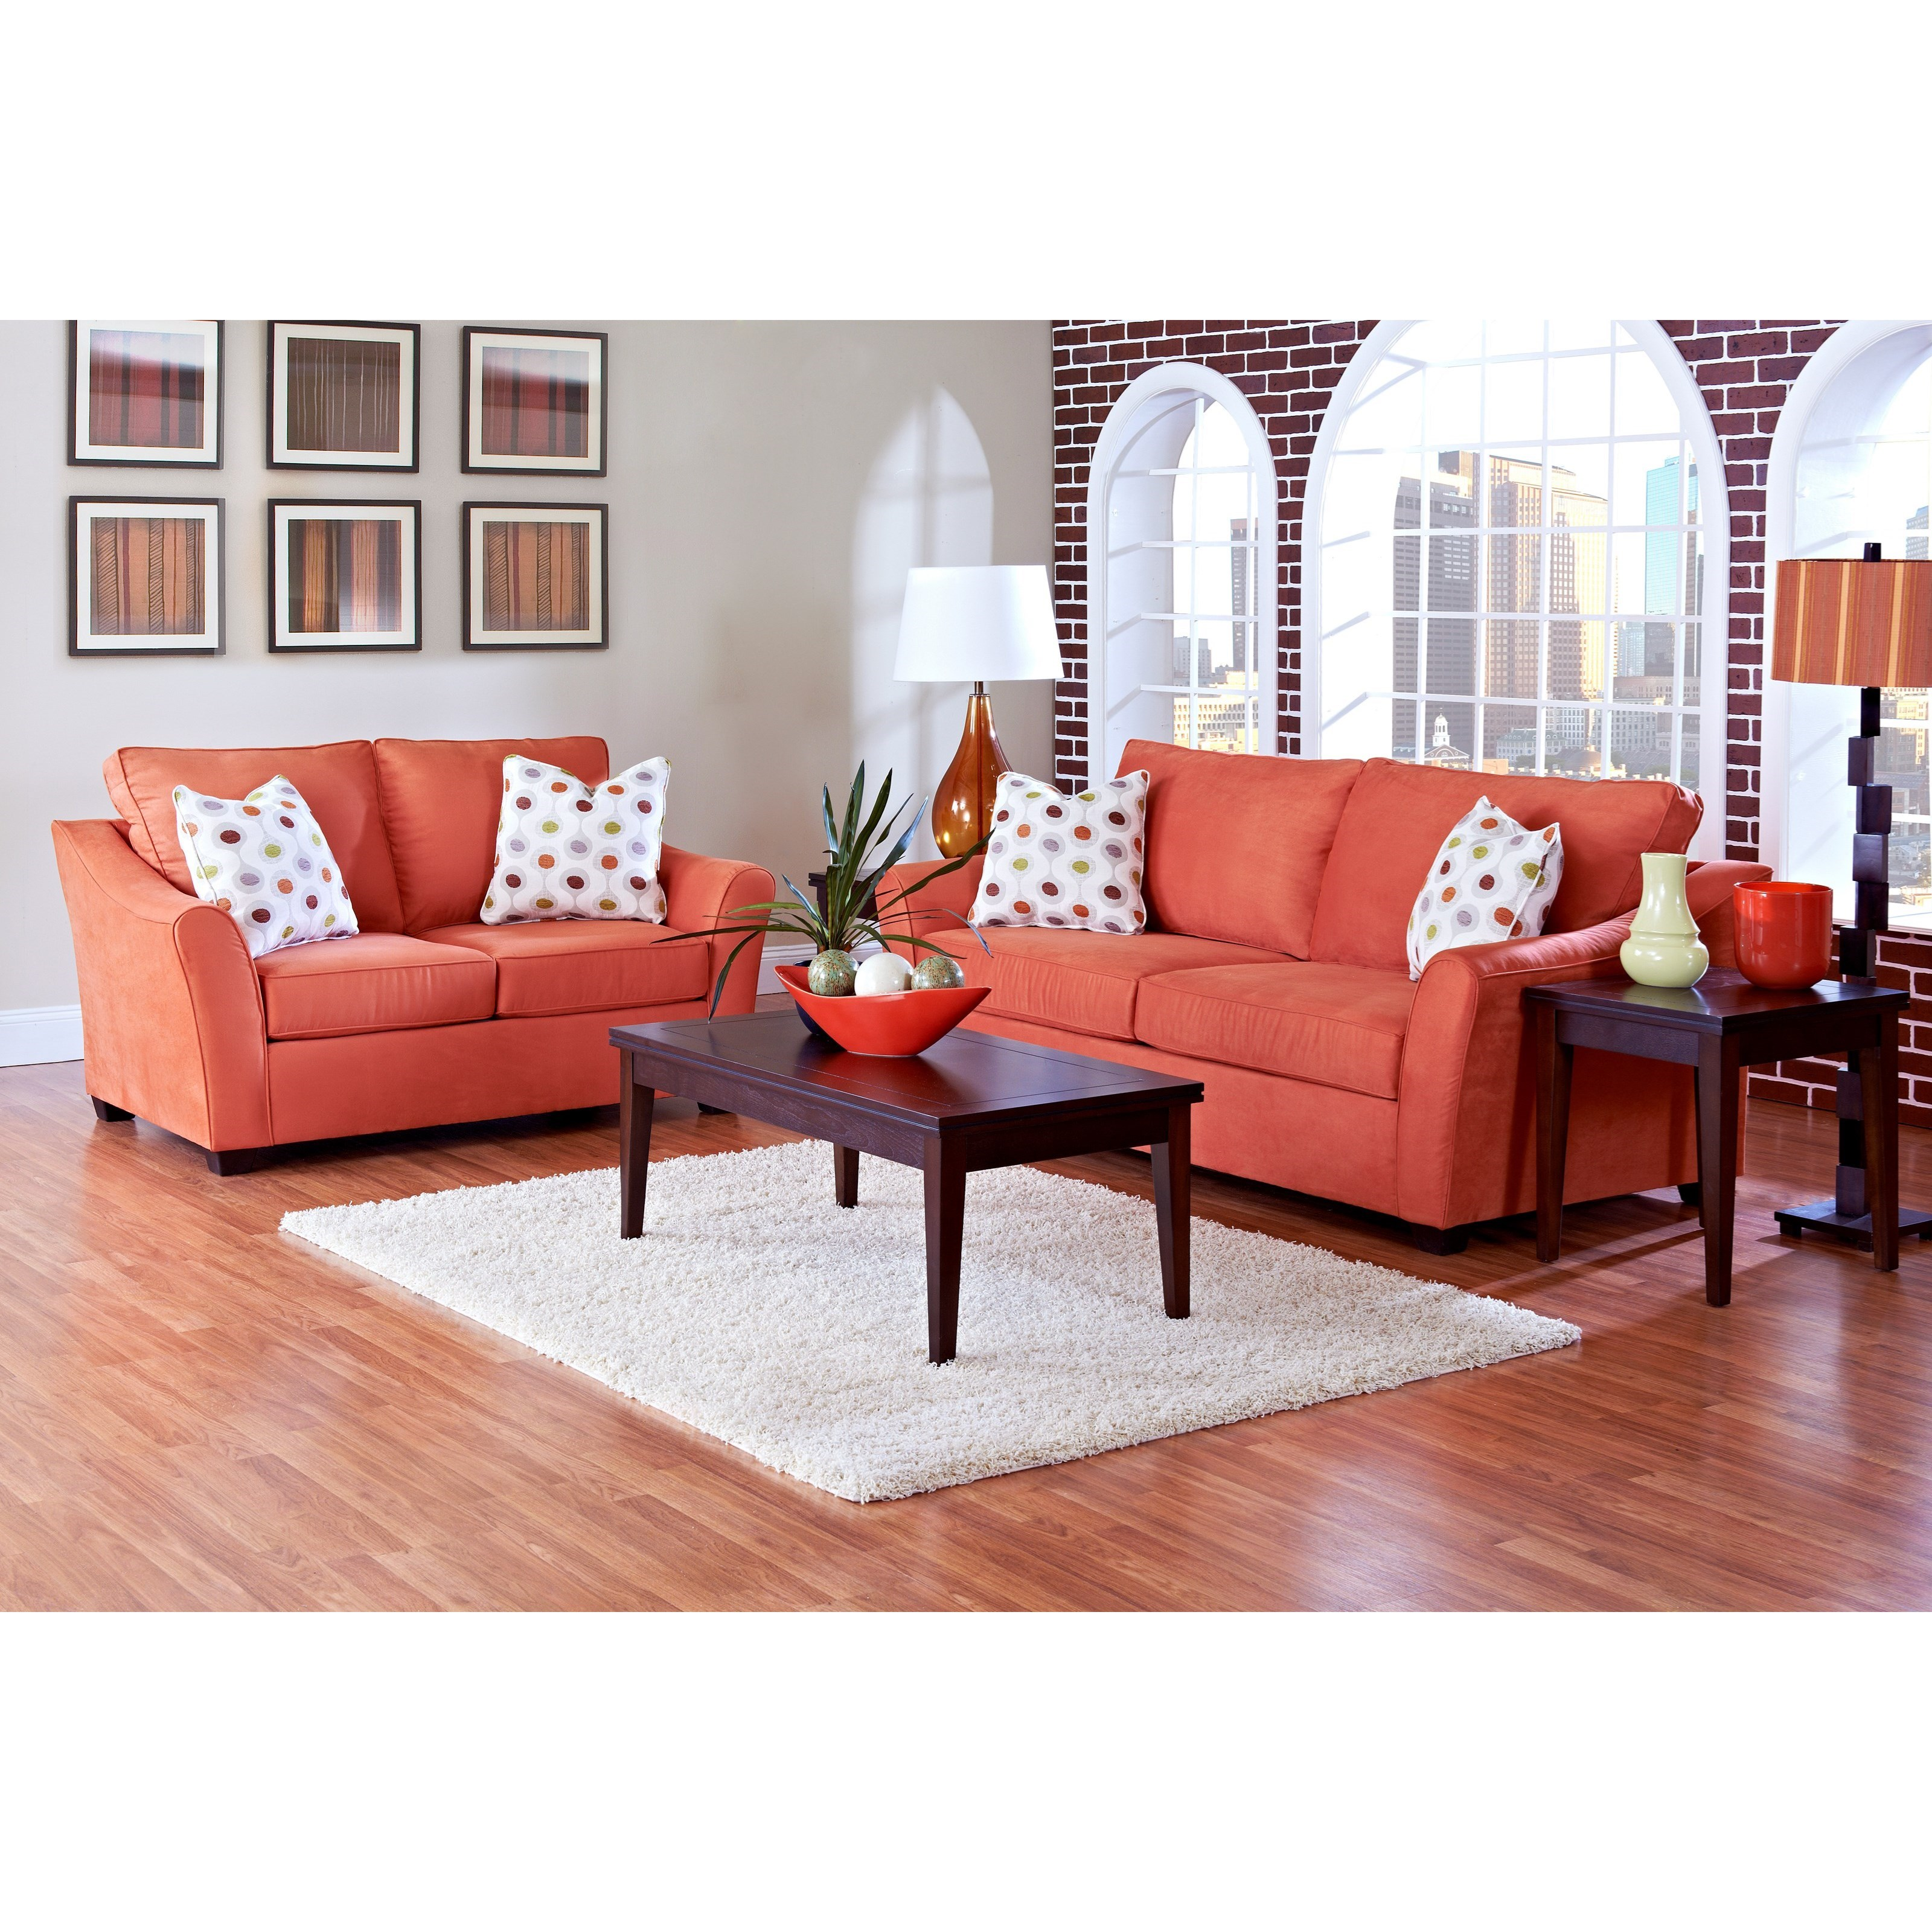 Klaussner Linville Living Room Group - Item Number: K80400 Living Room Group 2